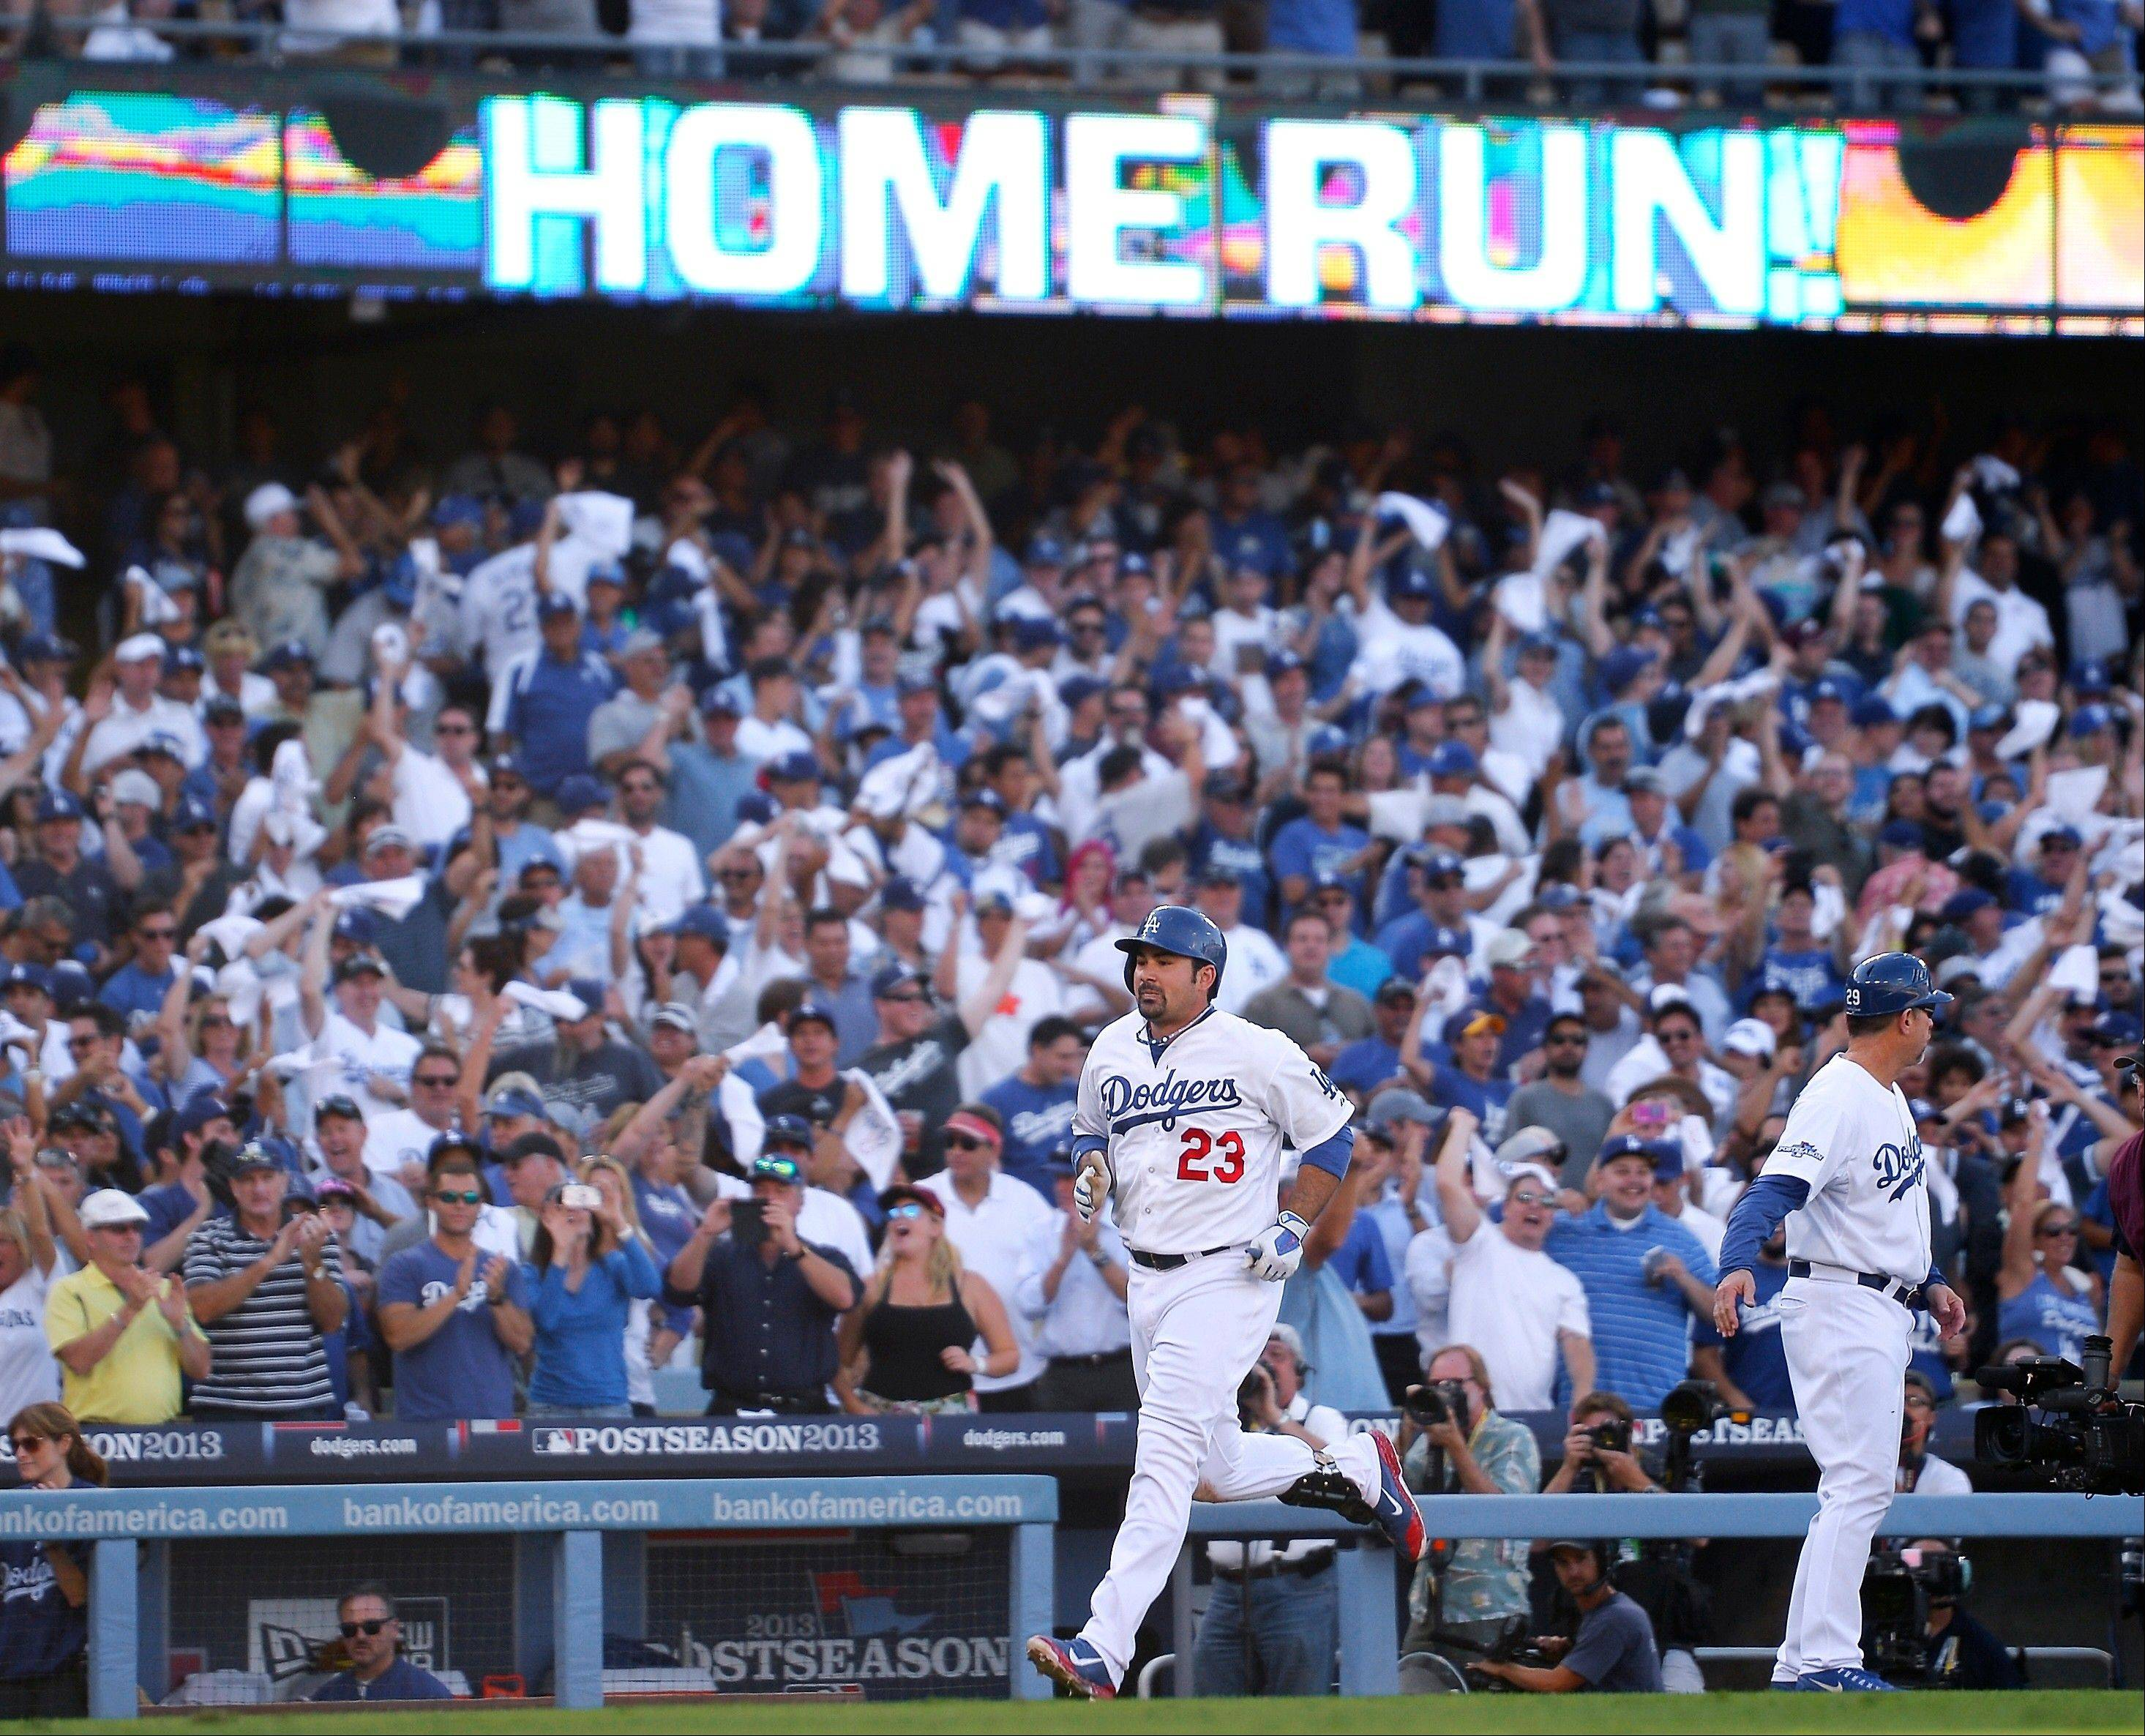 The Dodgers' Adrian Gonzalez rounds the bases after hitting a home run during the eighth inning of Game 5 of the National League Championship Series against the St. Louis Cardinals on Wednesday in Los Angeles. The Dodgers won 6-4.